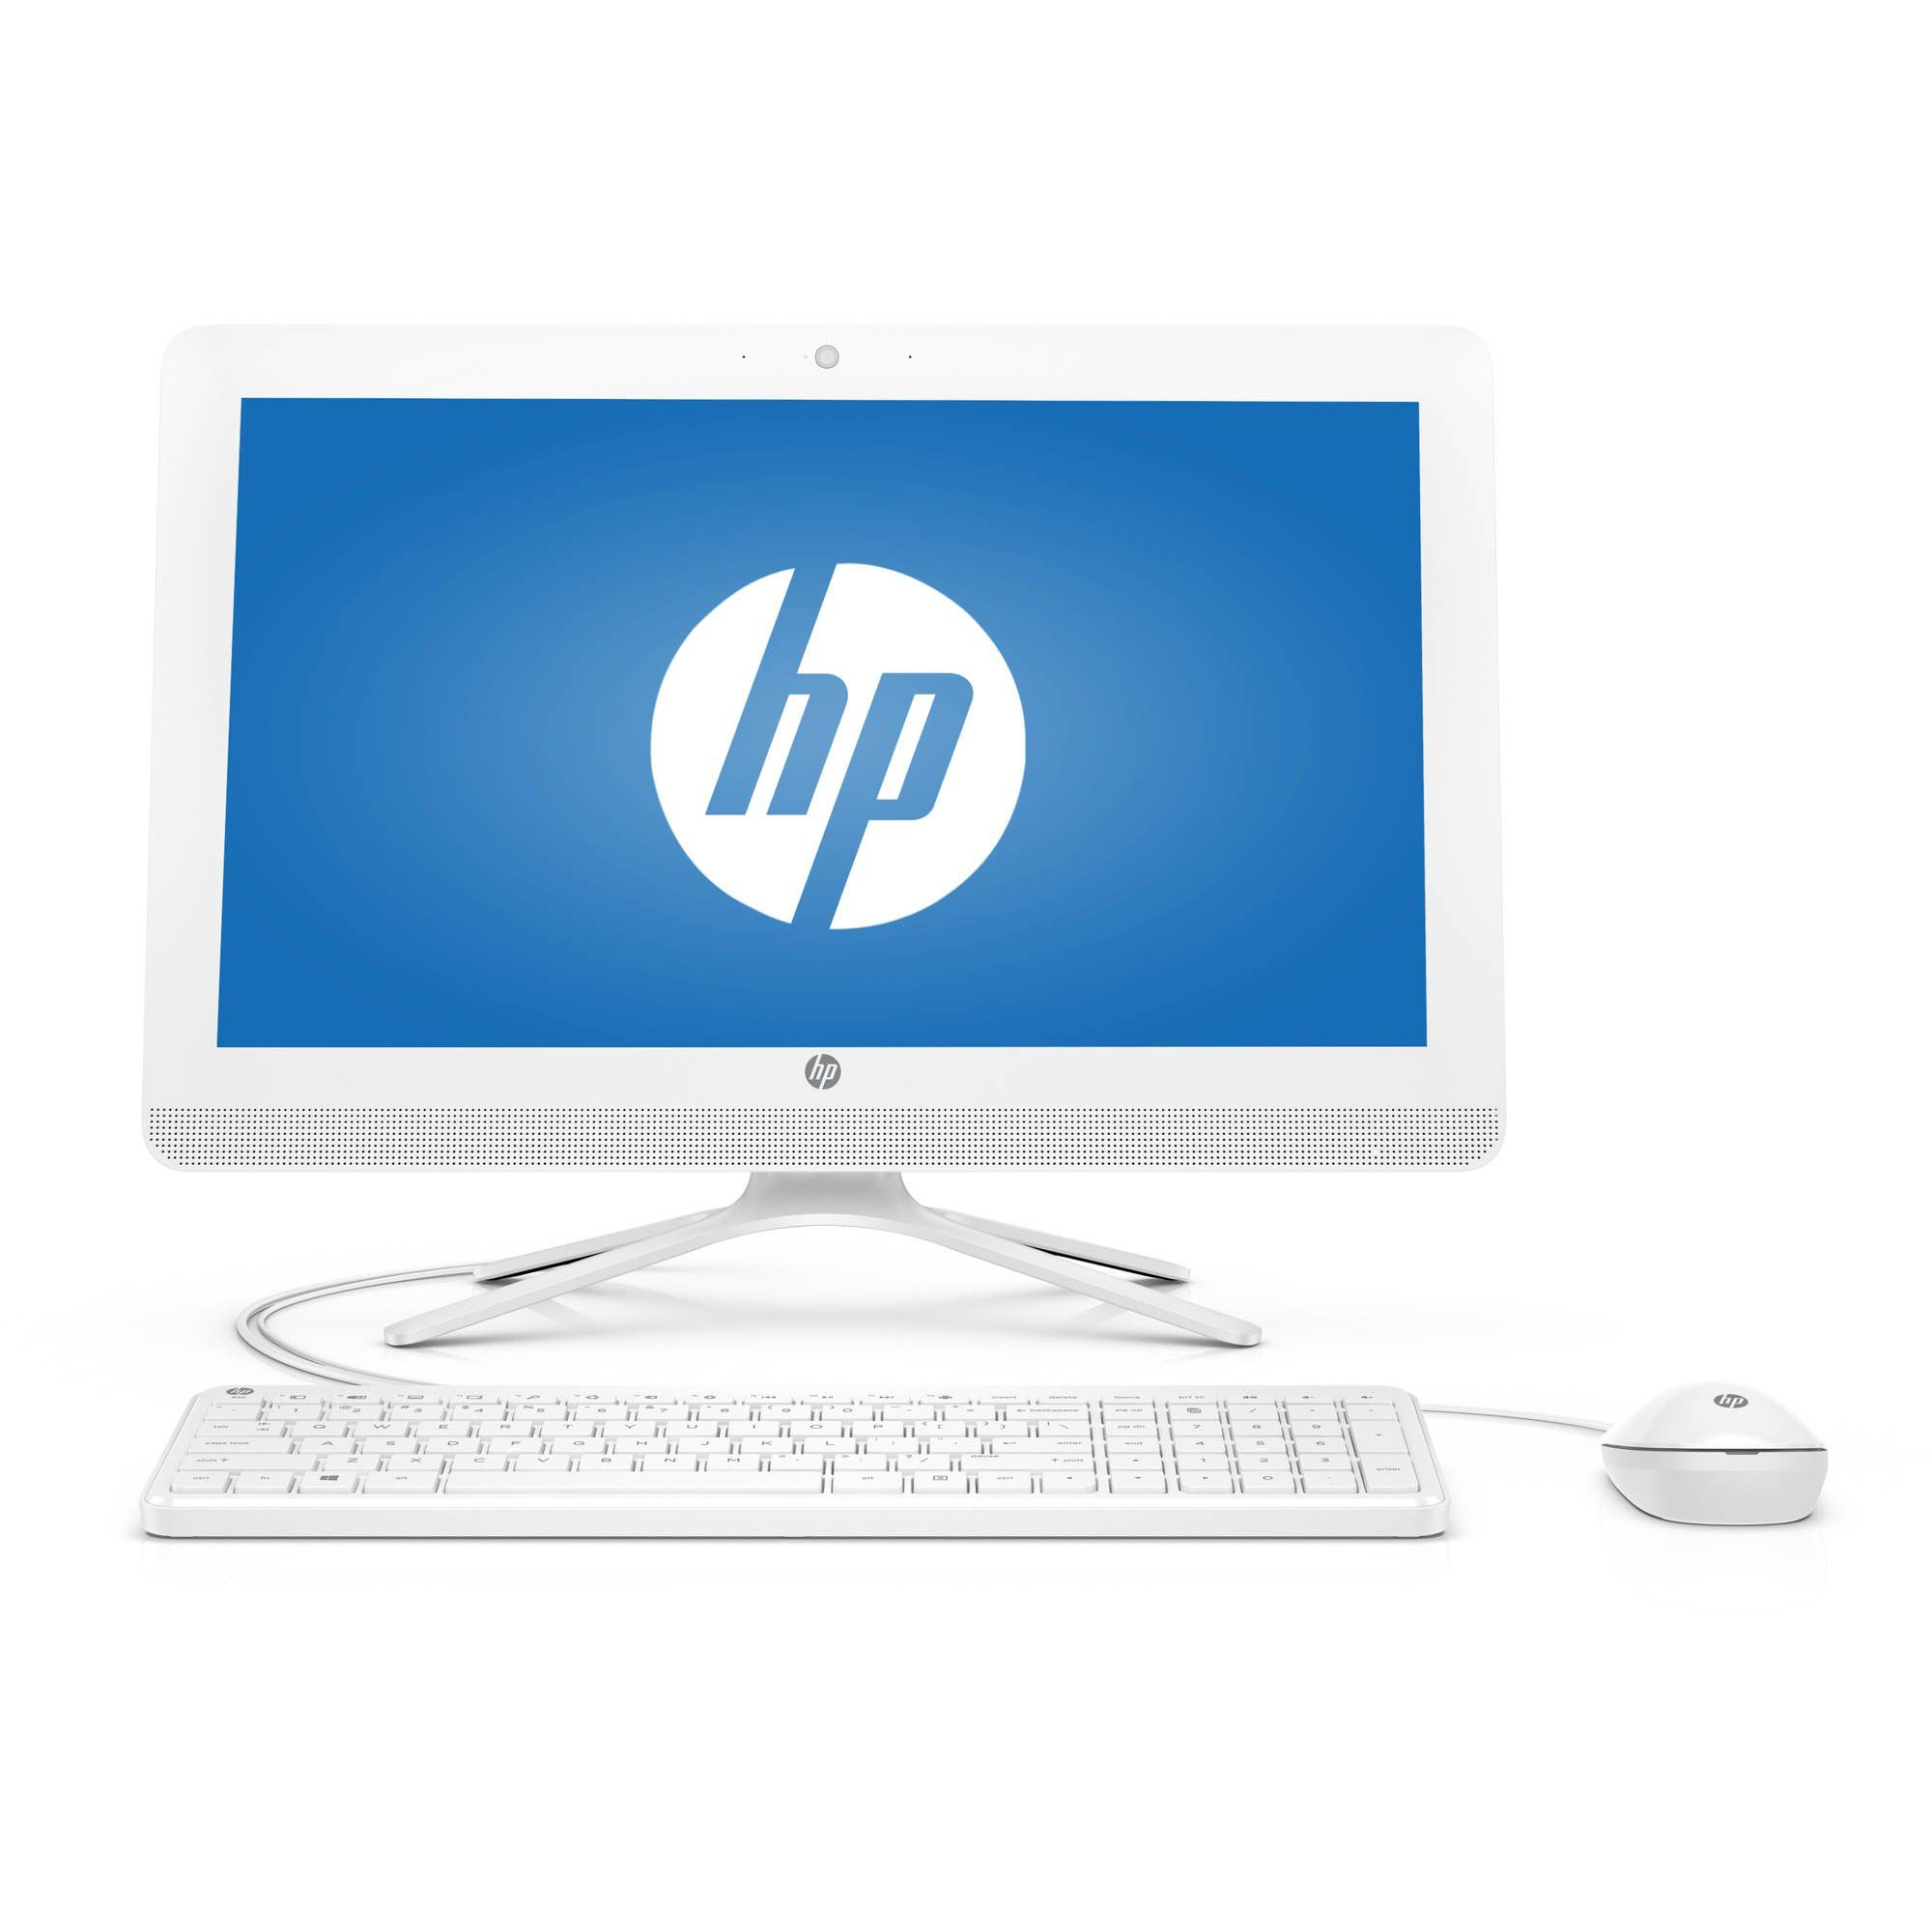 2017 New Flagship Hp 20 Snow White 19 5 Quot Hd All In One Business Desktop Intel Quad Core Pentium J3710 4gb Ram 500gb Hdd 7200rpm Intel Quad All In One